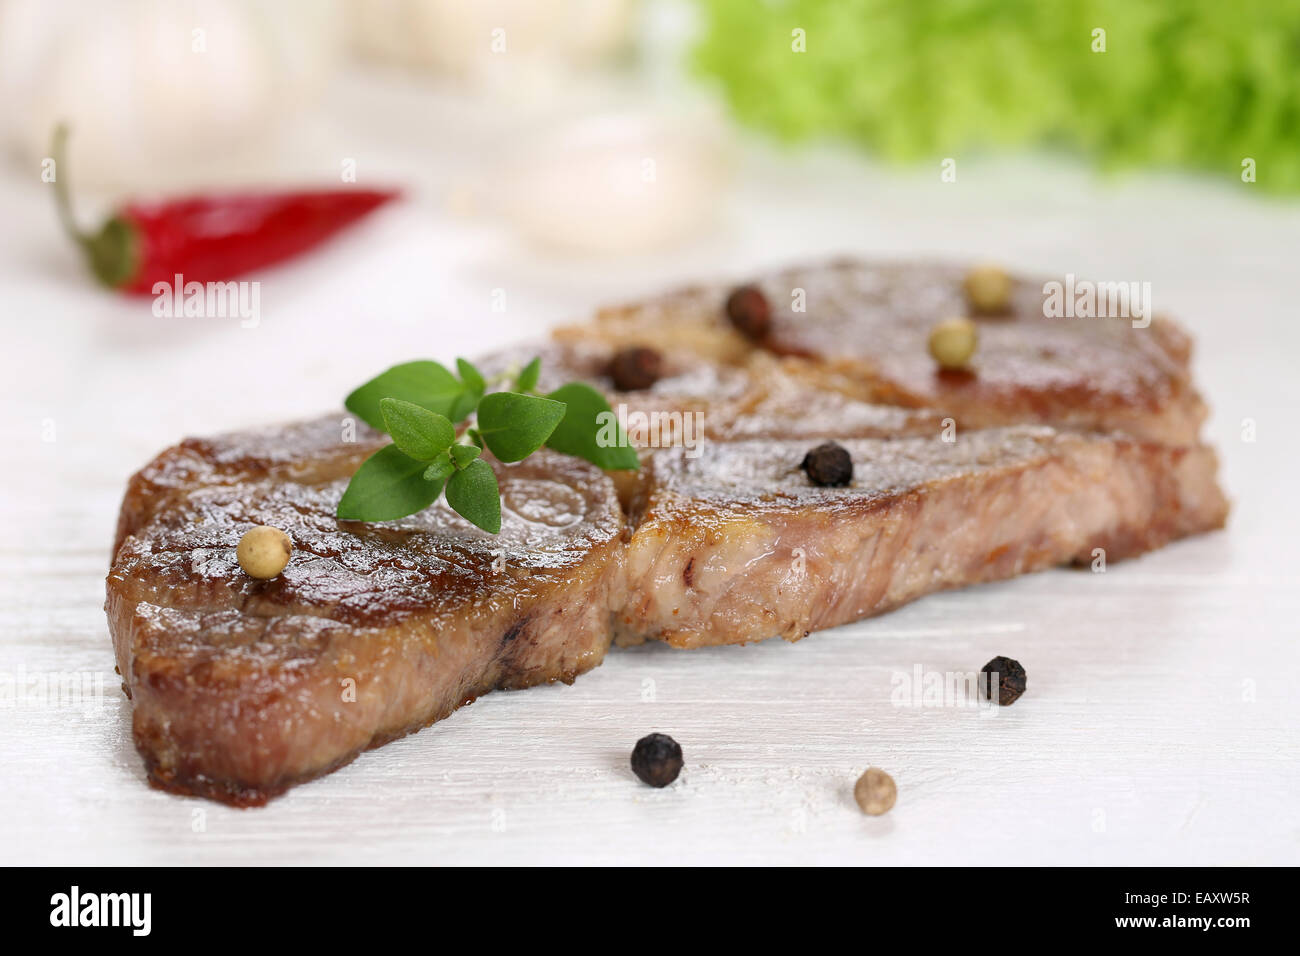 Pork chop steak cutlet meat on a wooden table - Stock Image